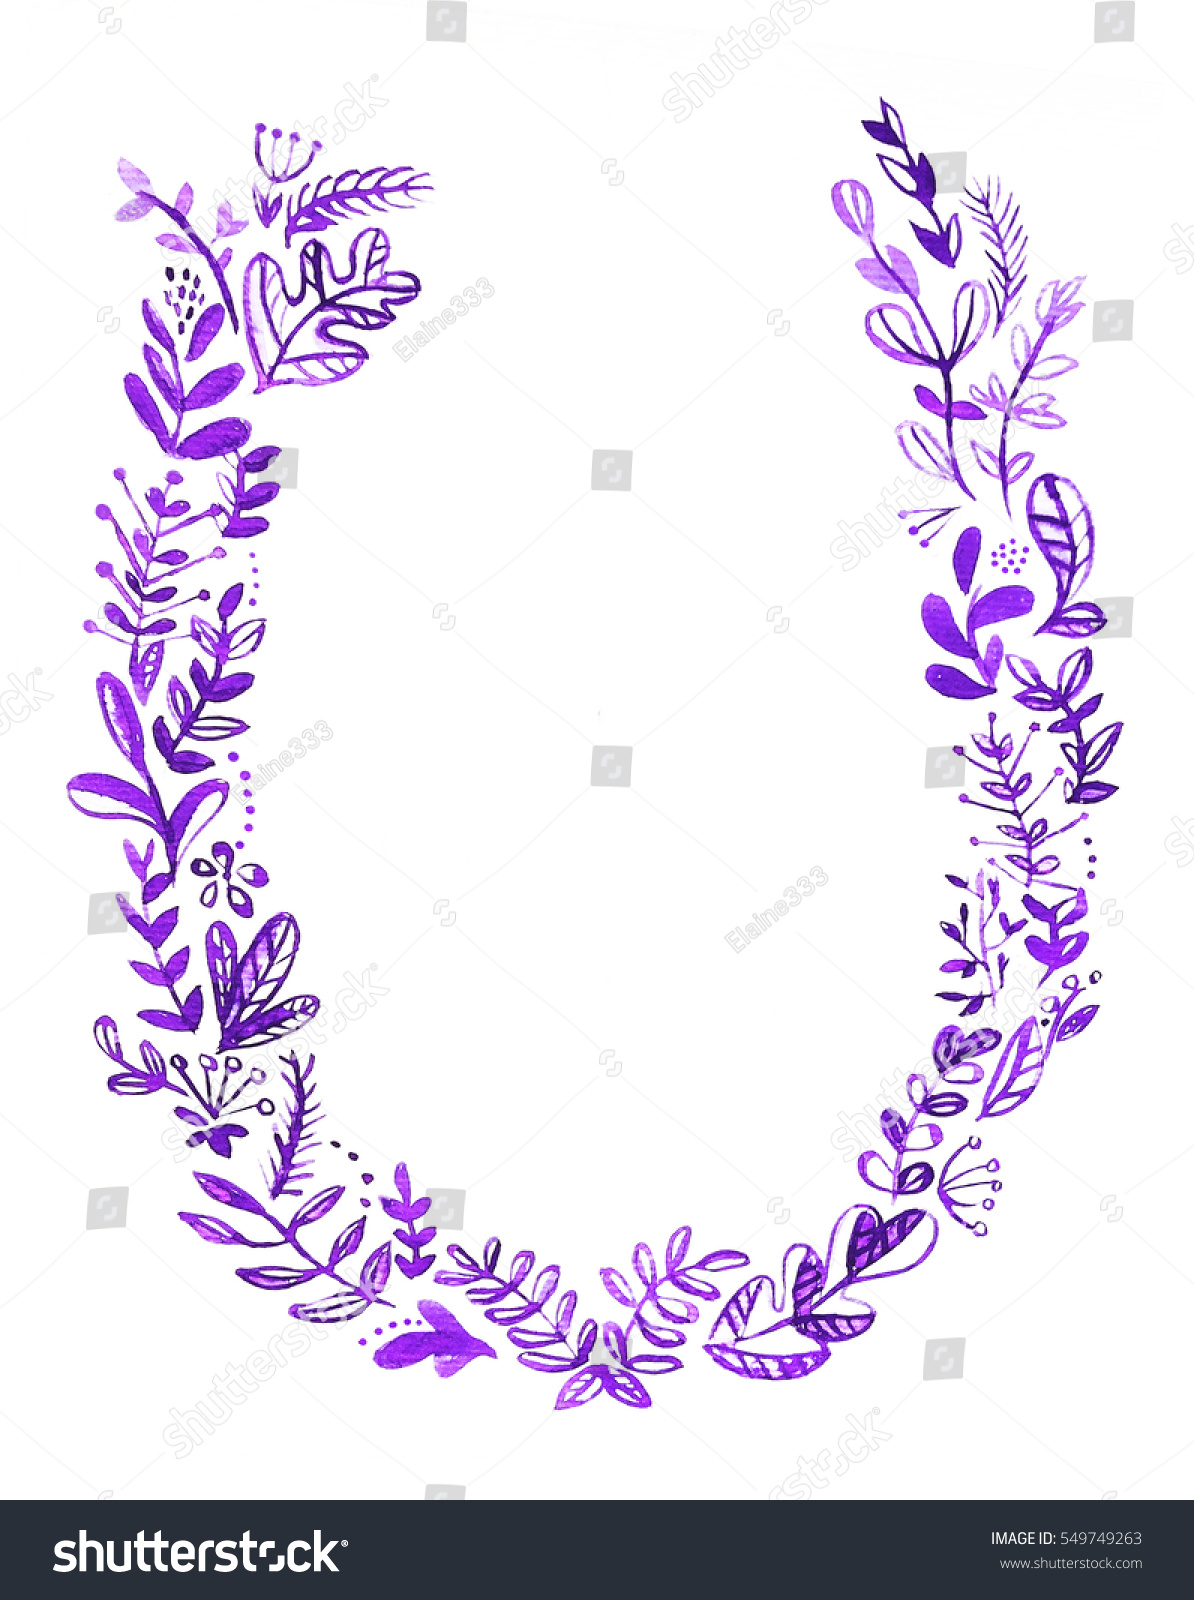 Watercolor Floral Motifs Ornament Frame Perfect Stock Illustration ...